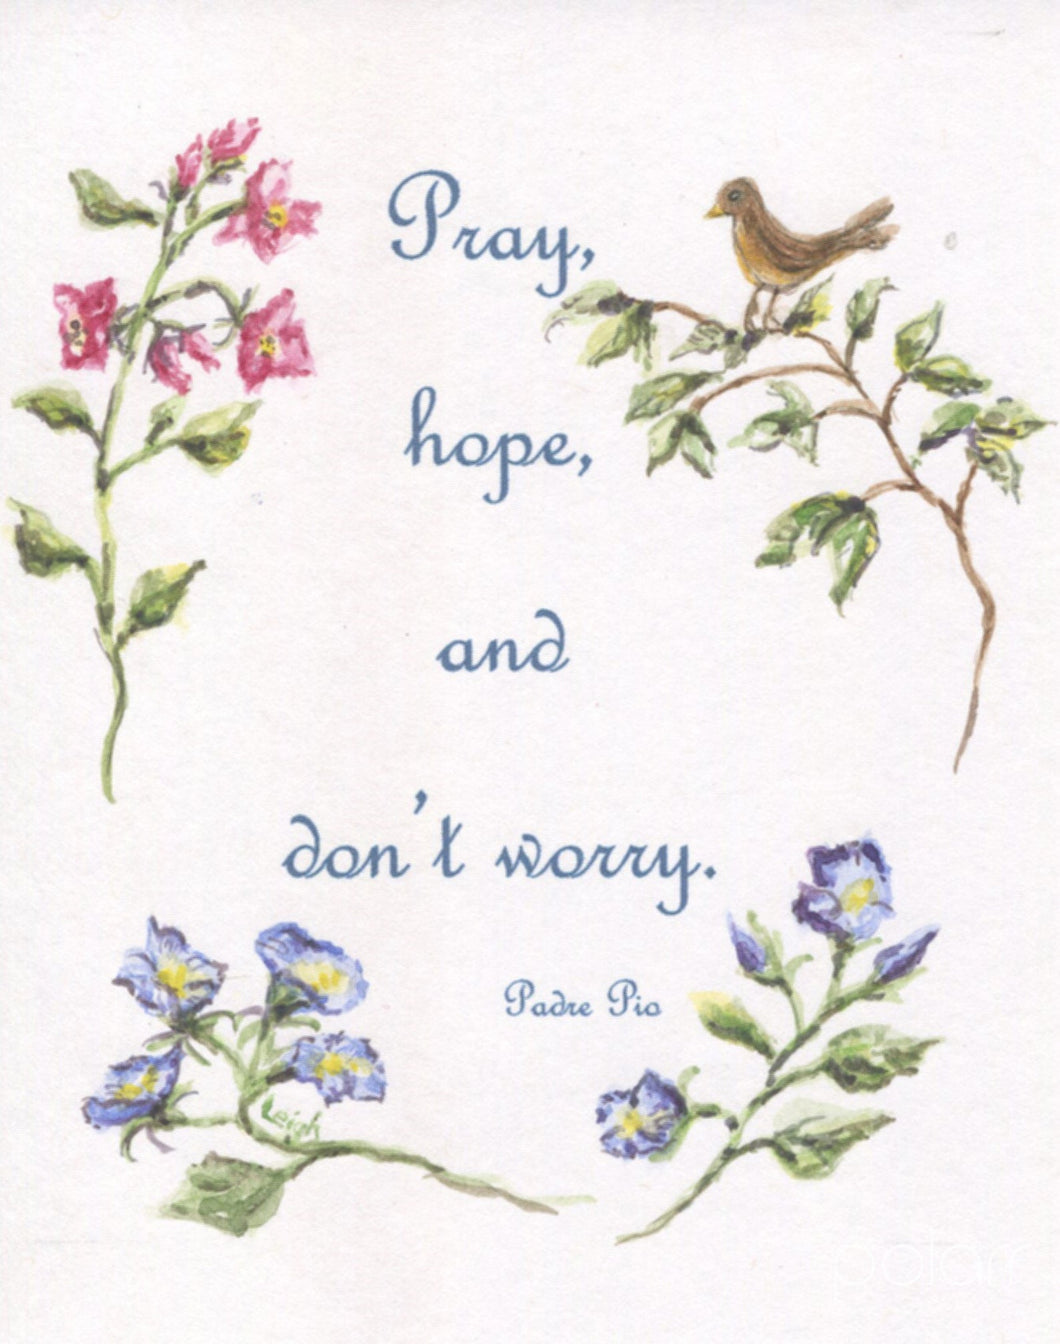 Pray, Hope and Don't Worry: Padre Pio Christian quote inspirational quote inspirational art wedding gift wall decor home decor floral art - Leigh Barry Watercolors